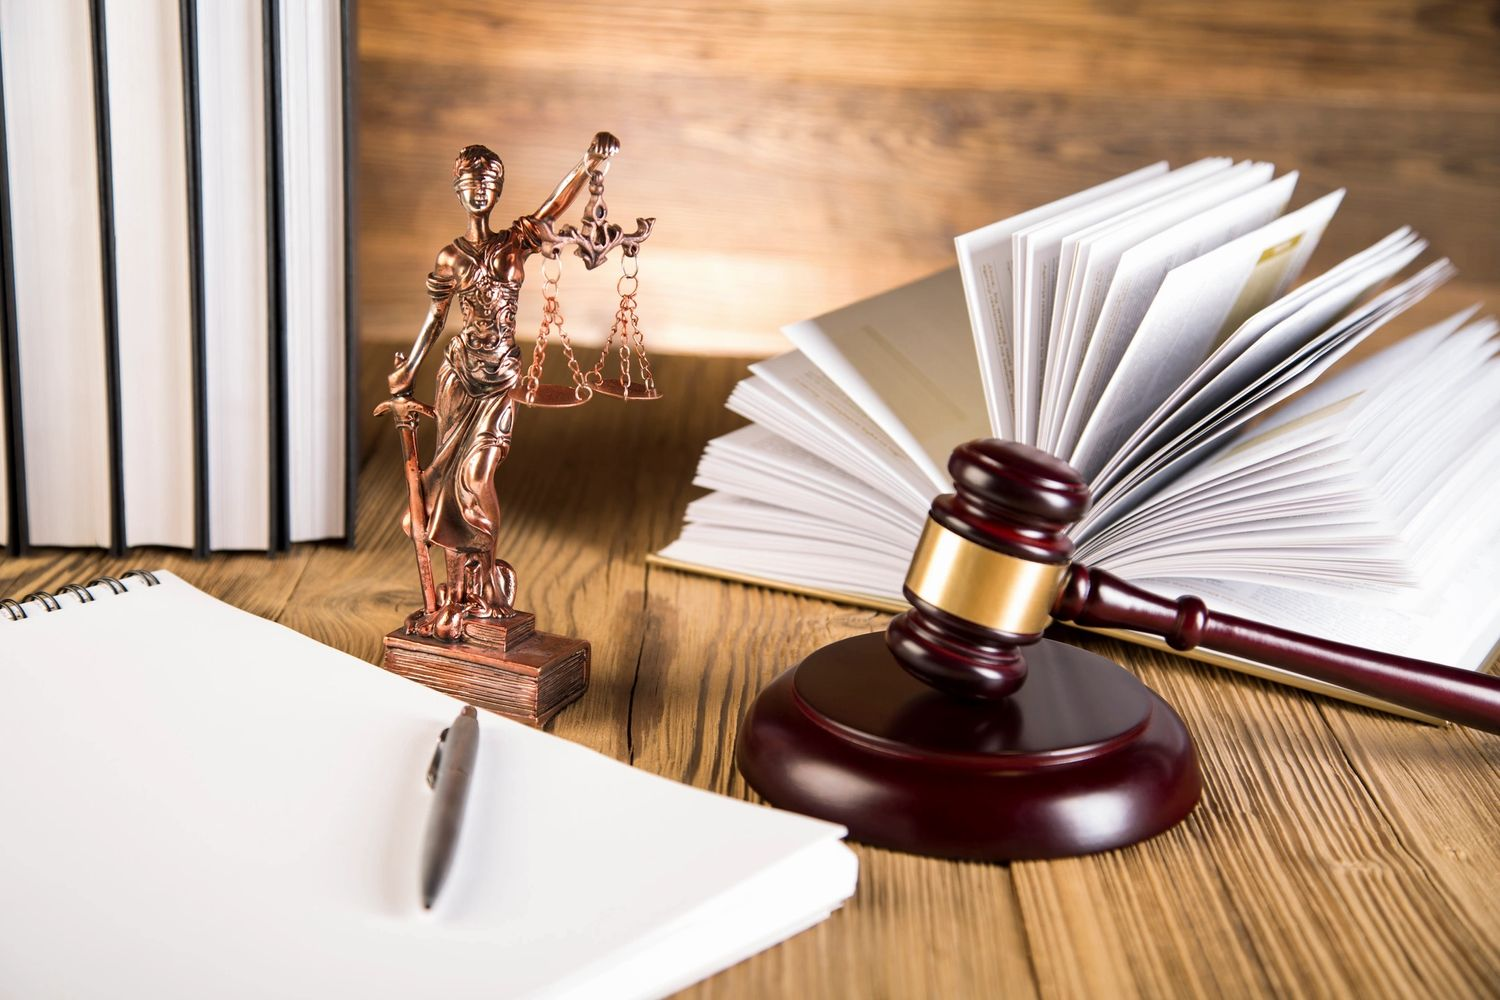 A picture of a small statue of Lady Justice, with her scales, a gavel, and an assortment of law book